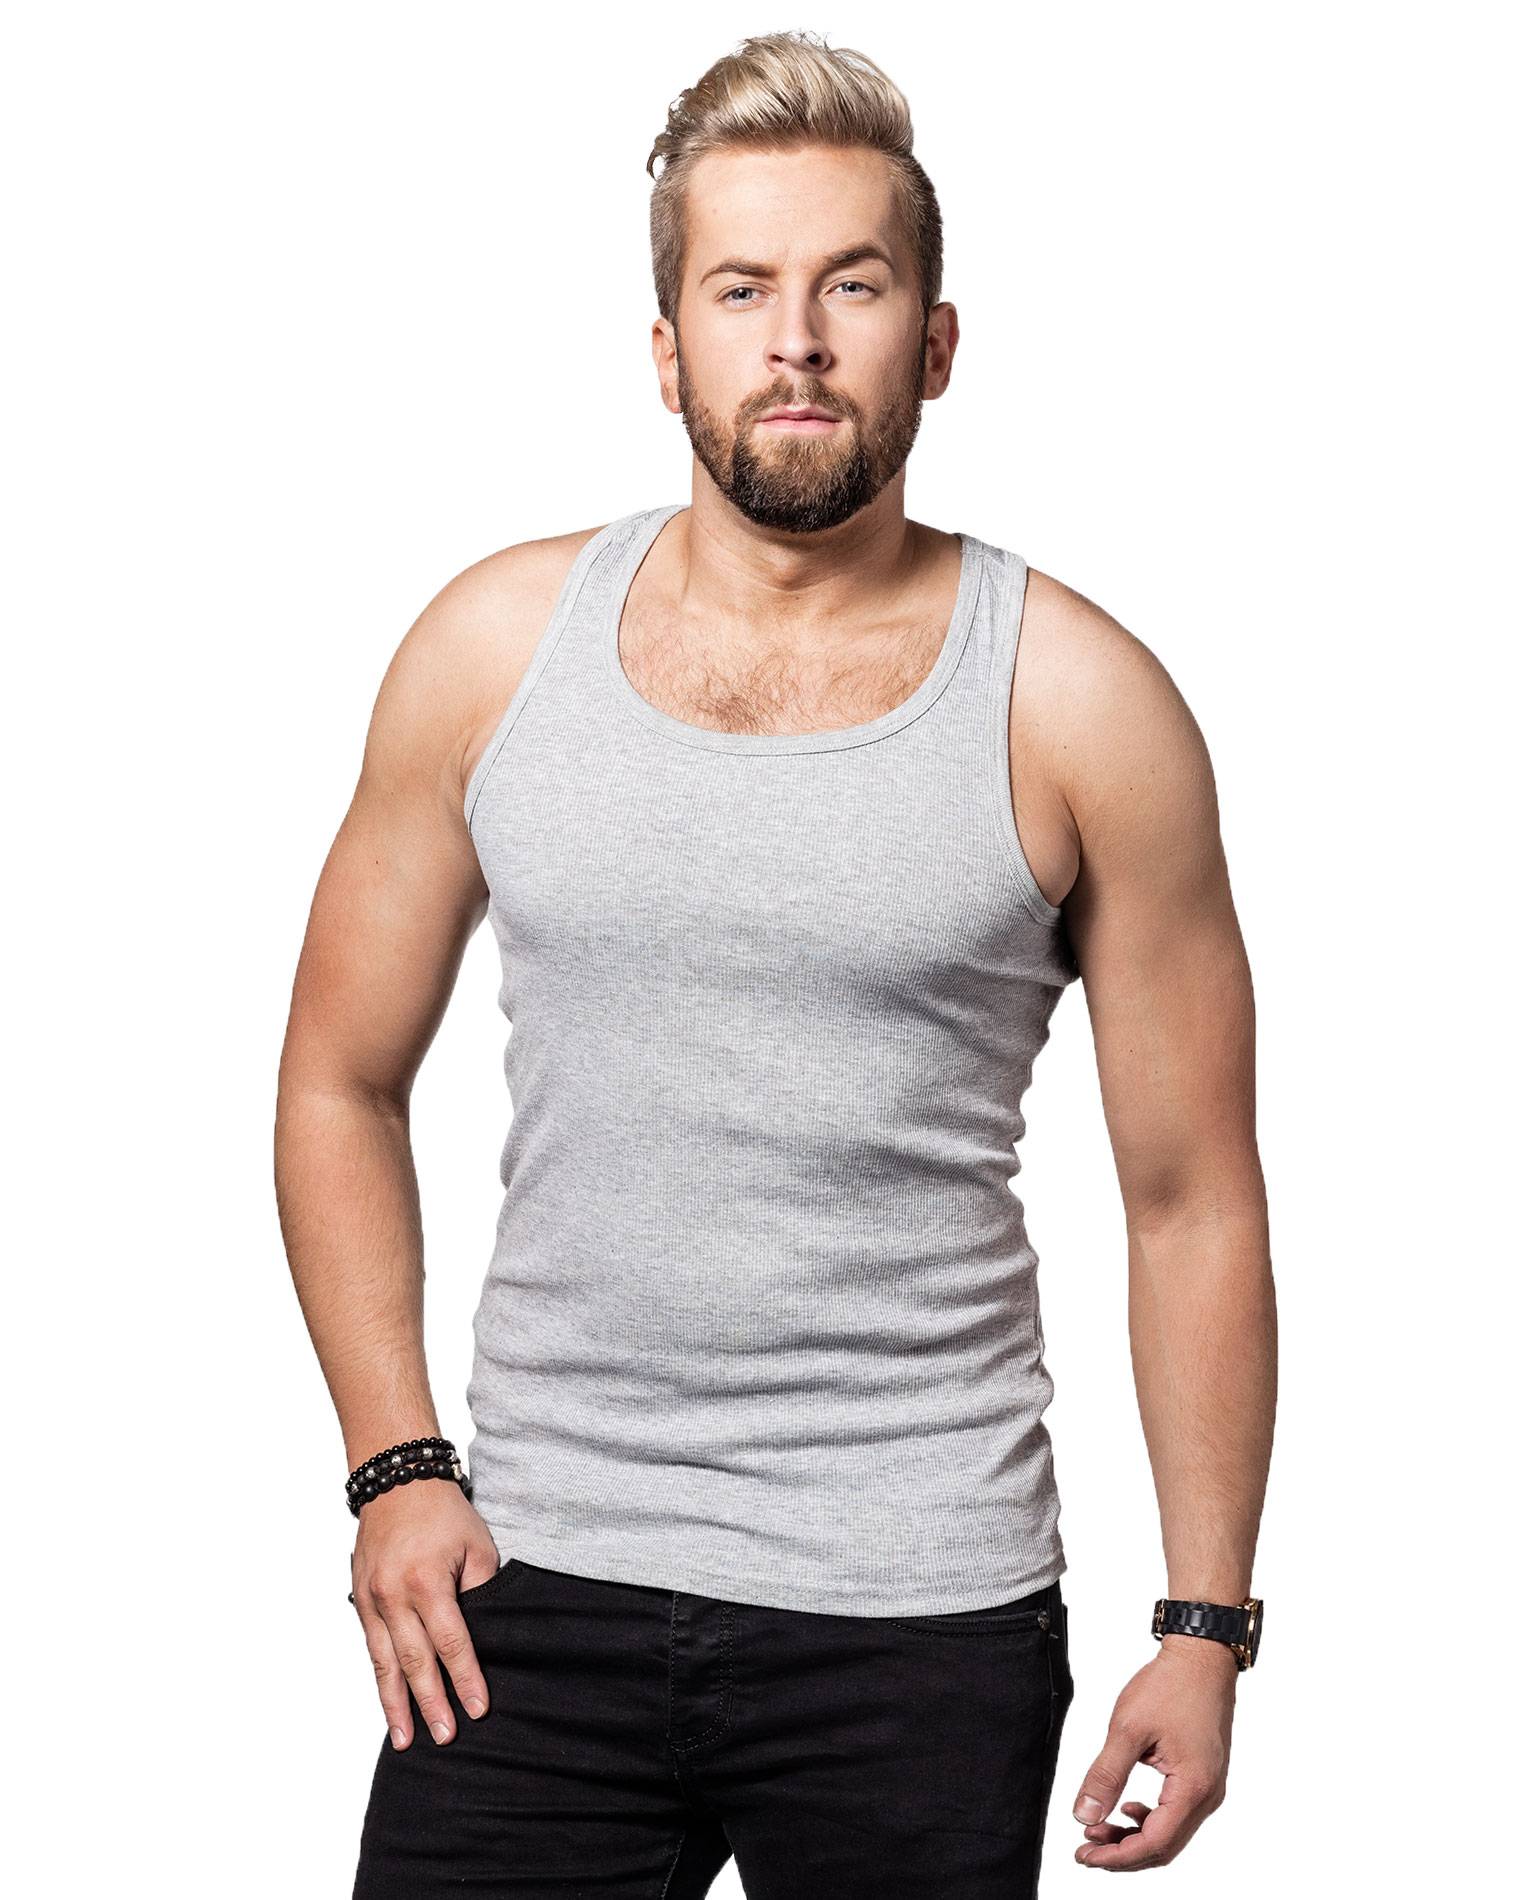 Find great deals on eBay for tank tops on sale. Shop with confidence.